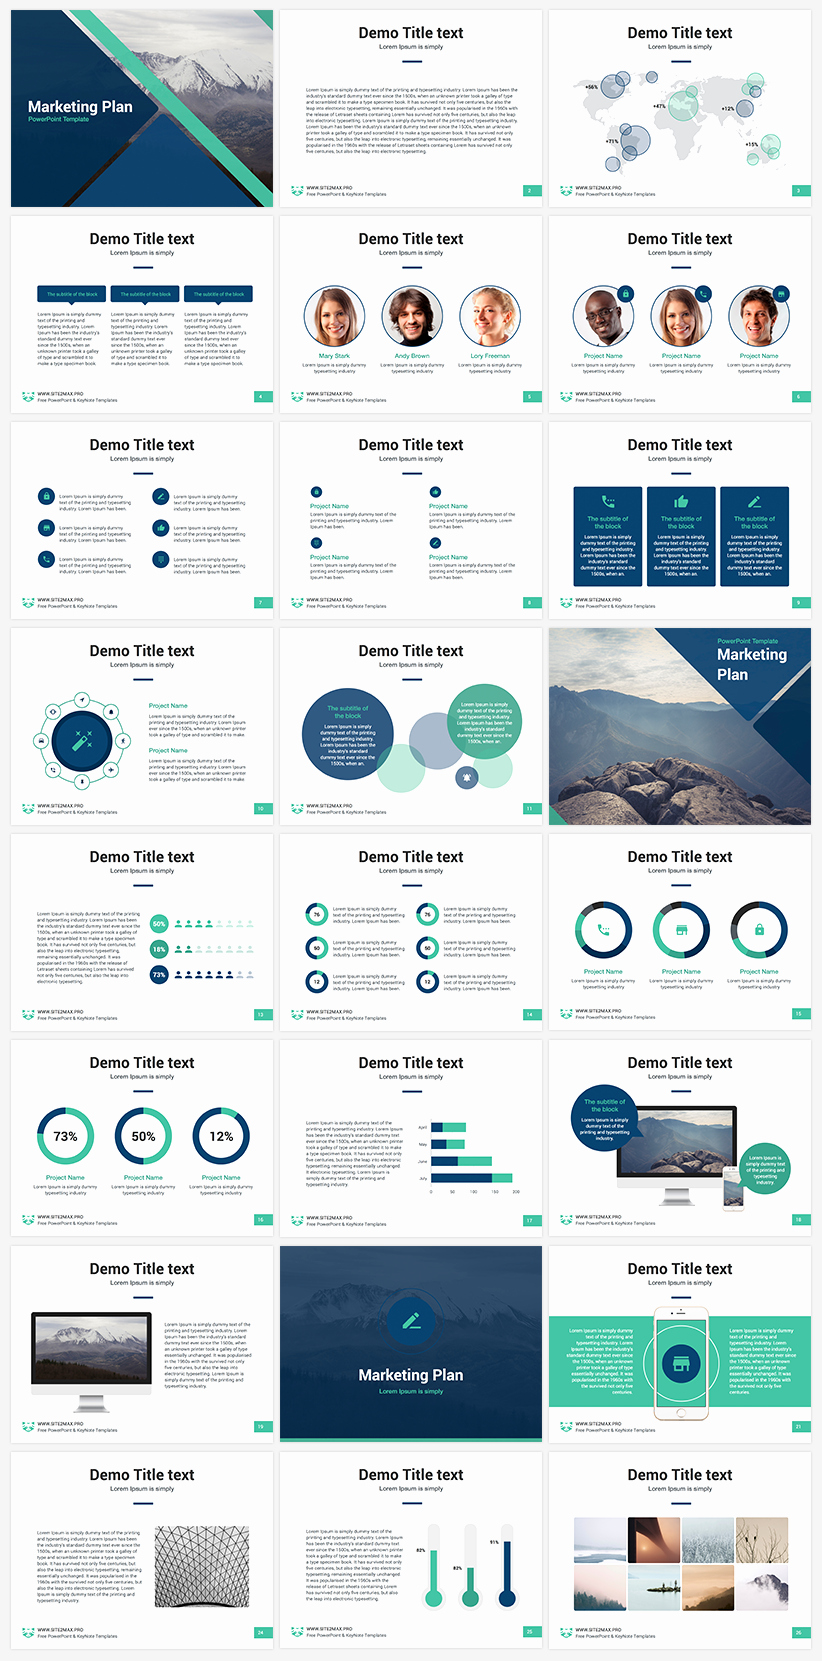 Best Powerpoint Templates Free Download Luxury the Best 8 Free Powerpoint Templates